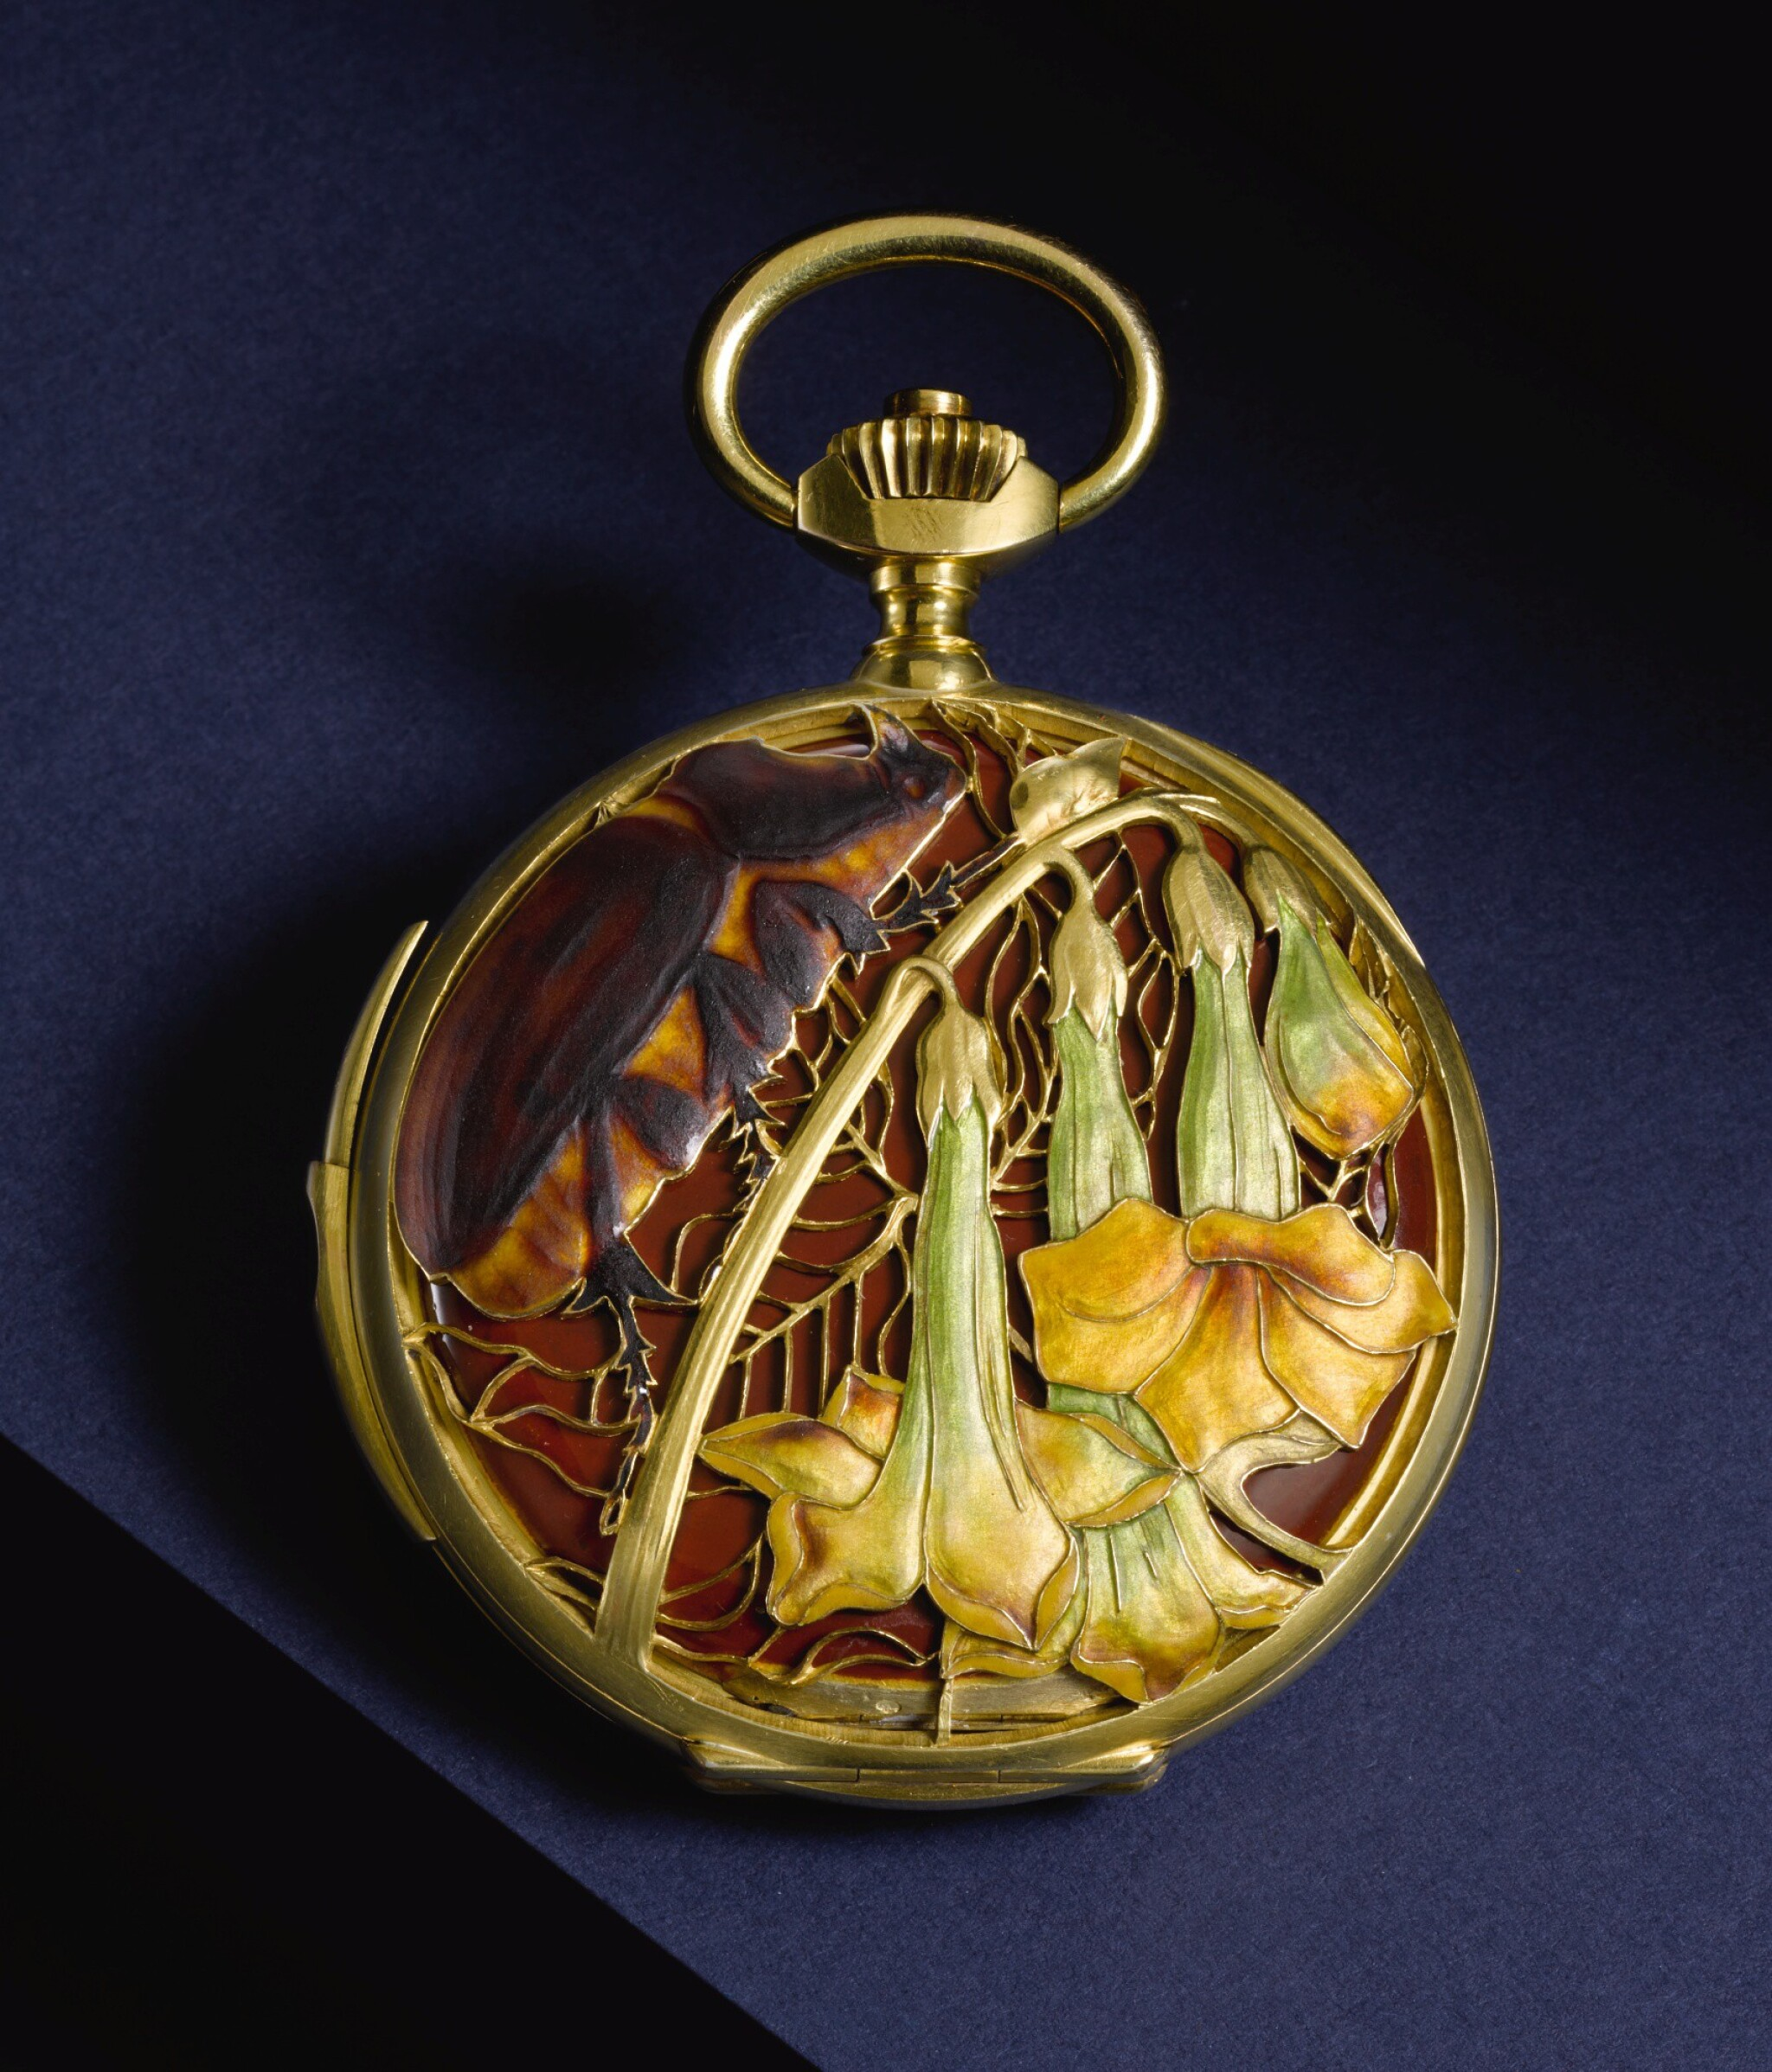 View full screen - View 1 of Lot 75. RENÉ LALIQUE | AN EXTREMELY RARE AND UNUSUAL ART NOUVEAU GOLD HUNTING CASED KEYLESS LEVER QUARTER REPEATING WATCH, THE PIERCED COVERS WITH PÂTE DE VERRE DECORATION   CIRCA 1900, NO. 17120 [極罕有新藝術風格黃金二問報時懷錶,穿孔錶蓋飾粉末鑄造玻璃,年份約1900,編號17120].